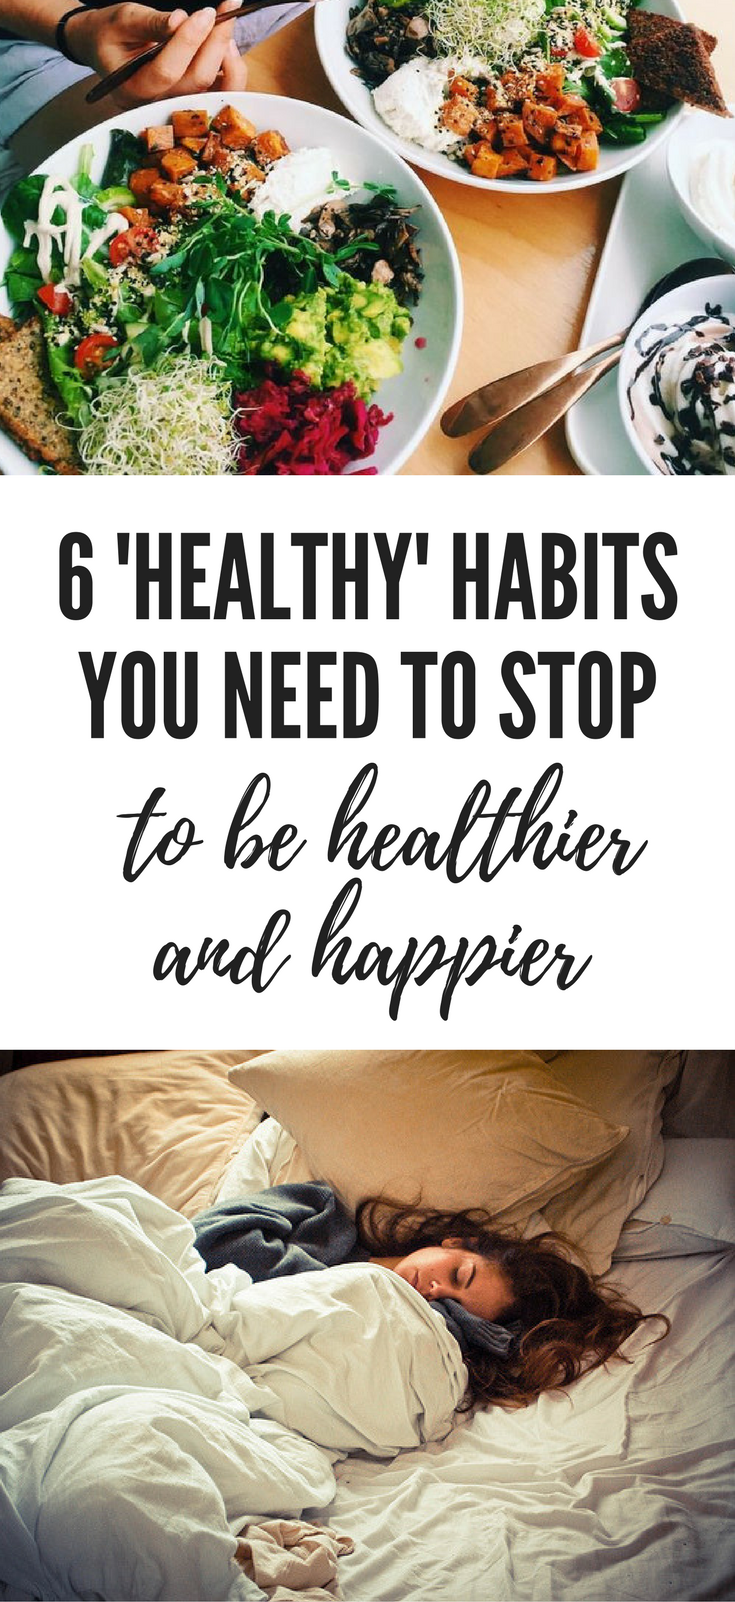 unhealthy habits to stop doing healthier